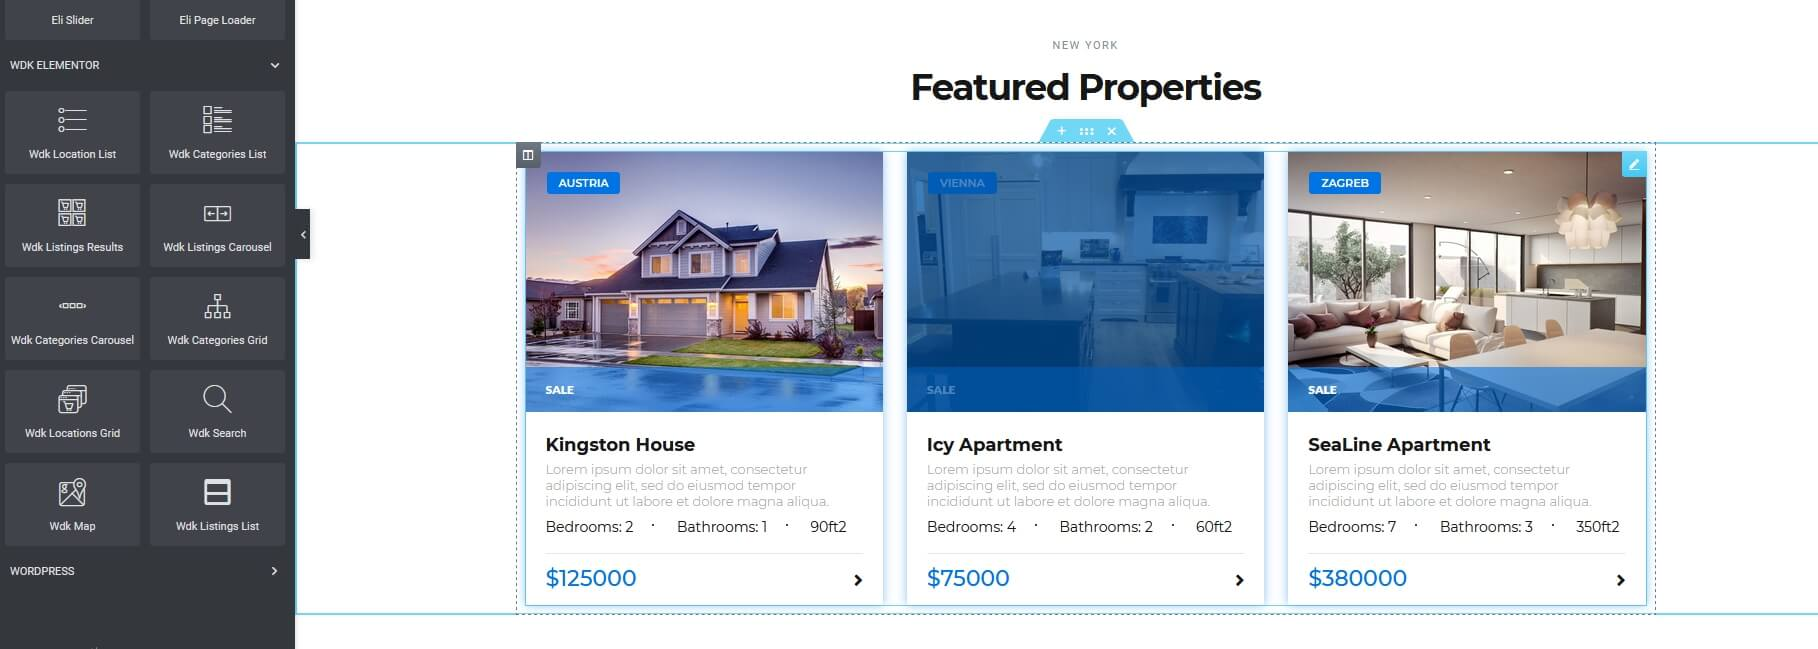 Elementor Elements, Featured Listings Example